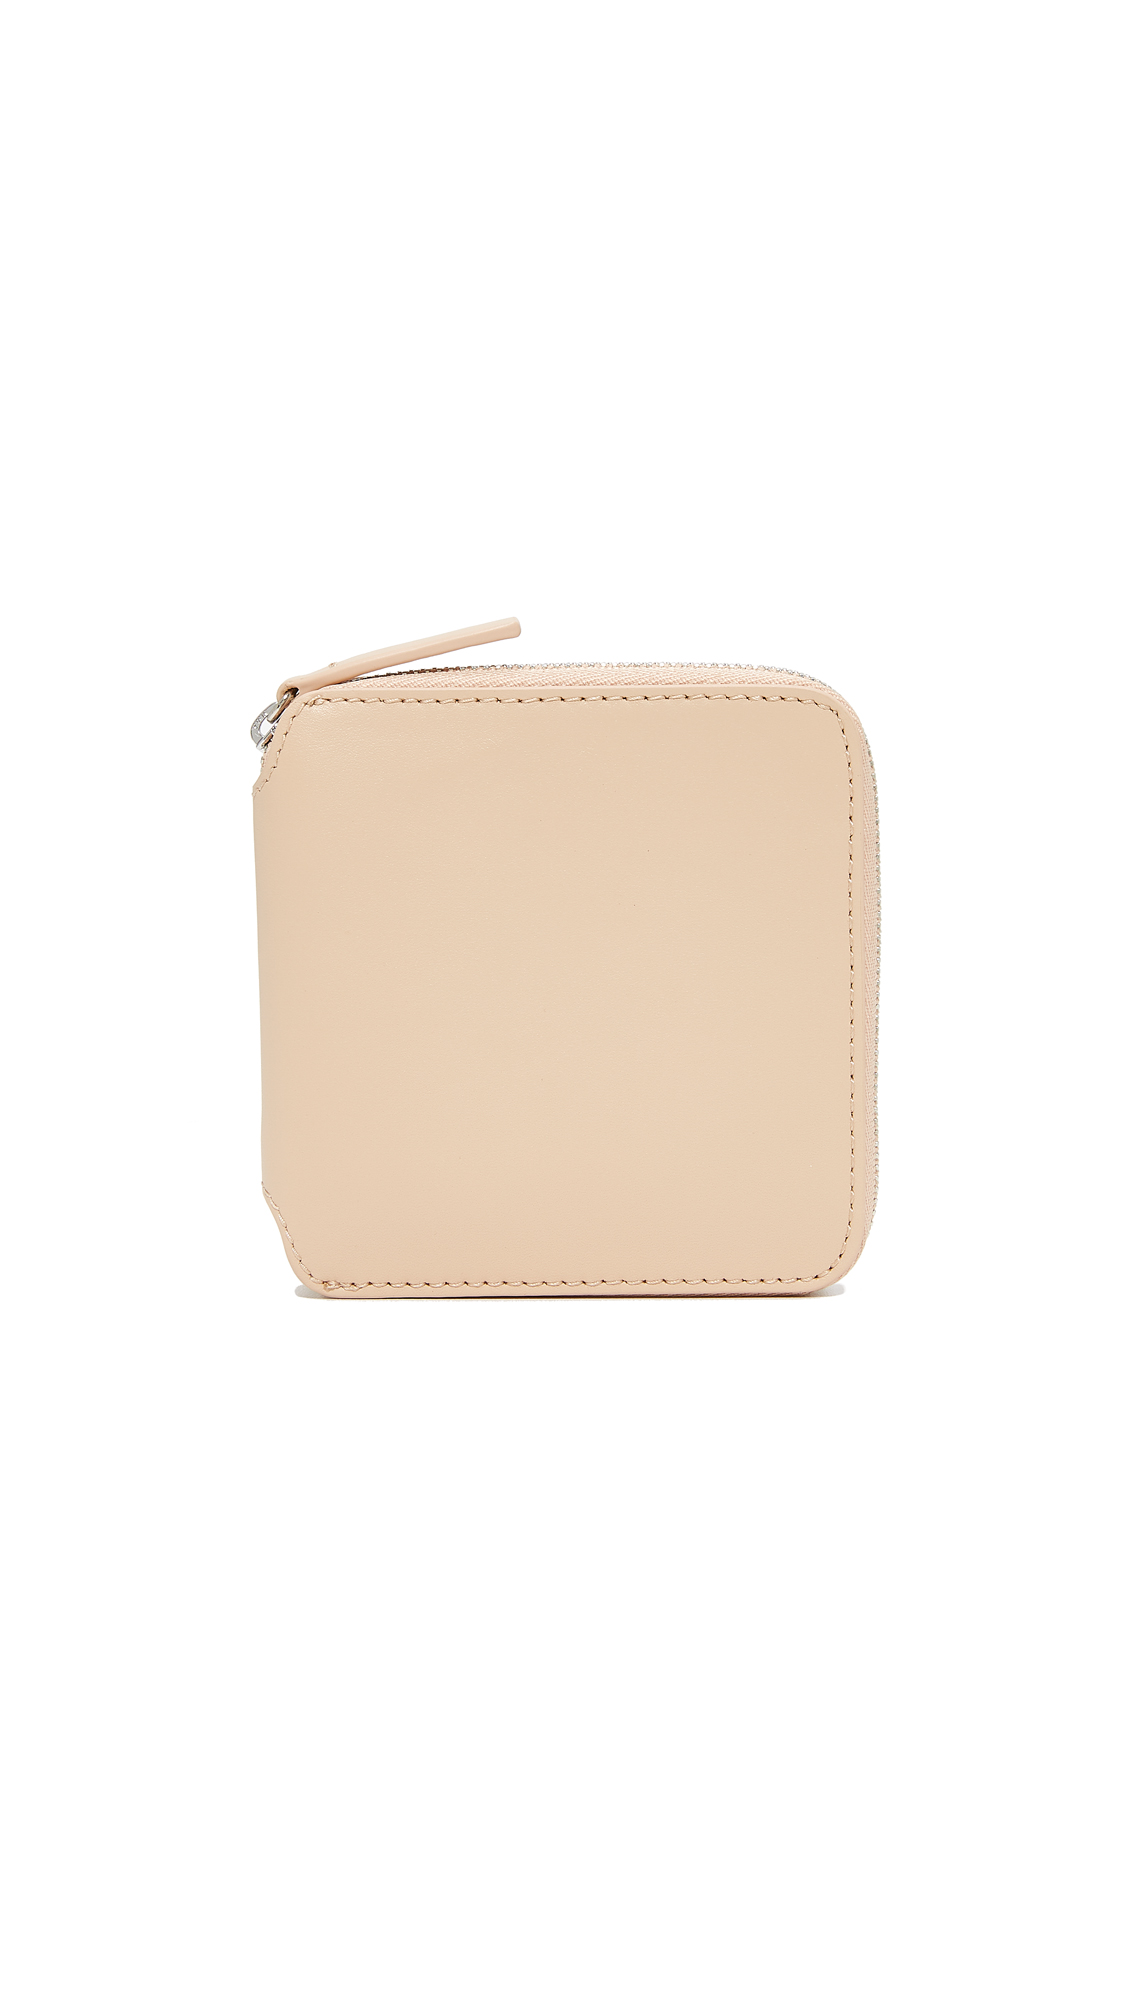 BAGGU Square Wallet - Fawn